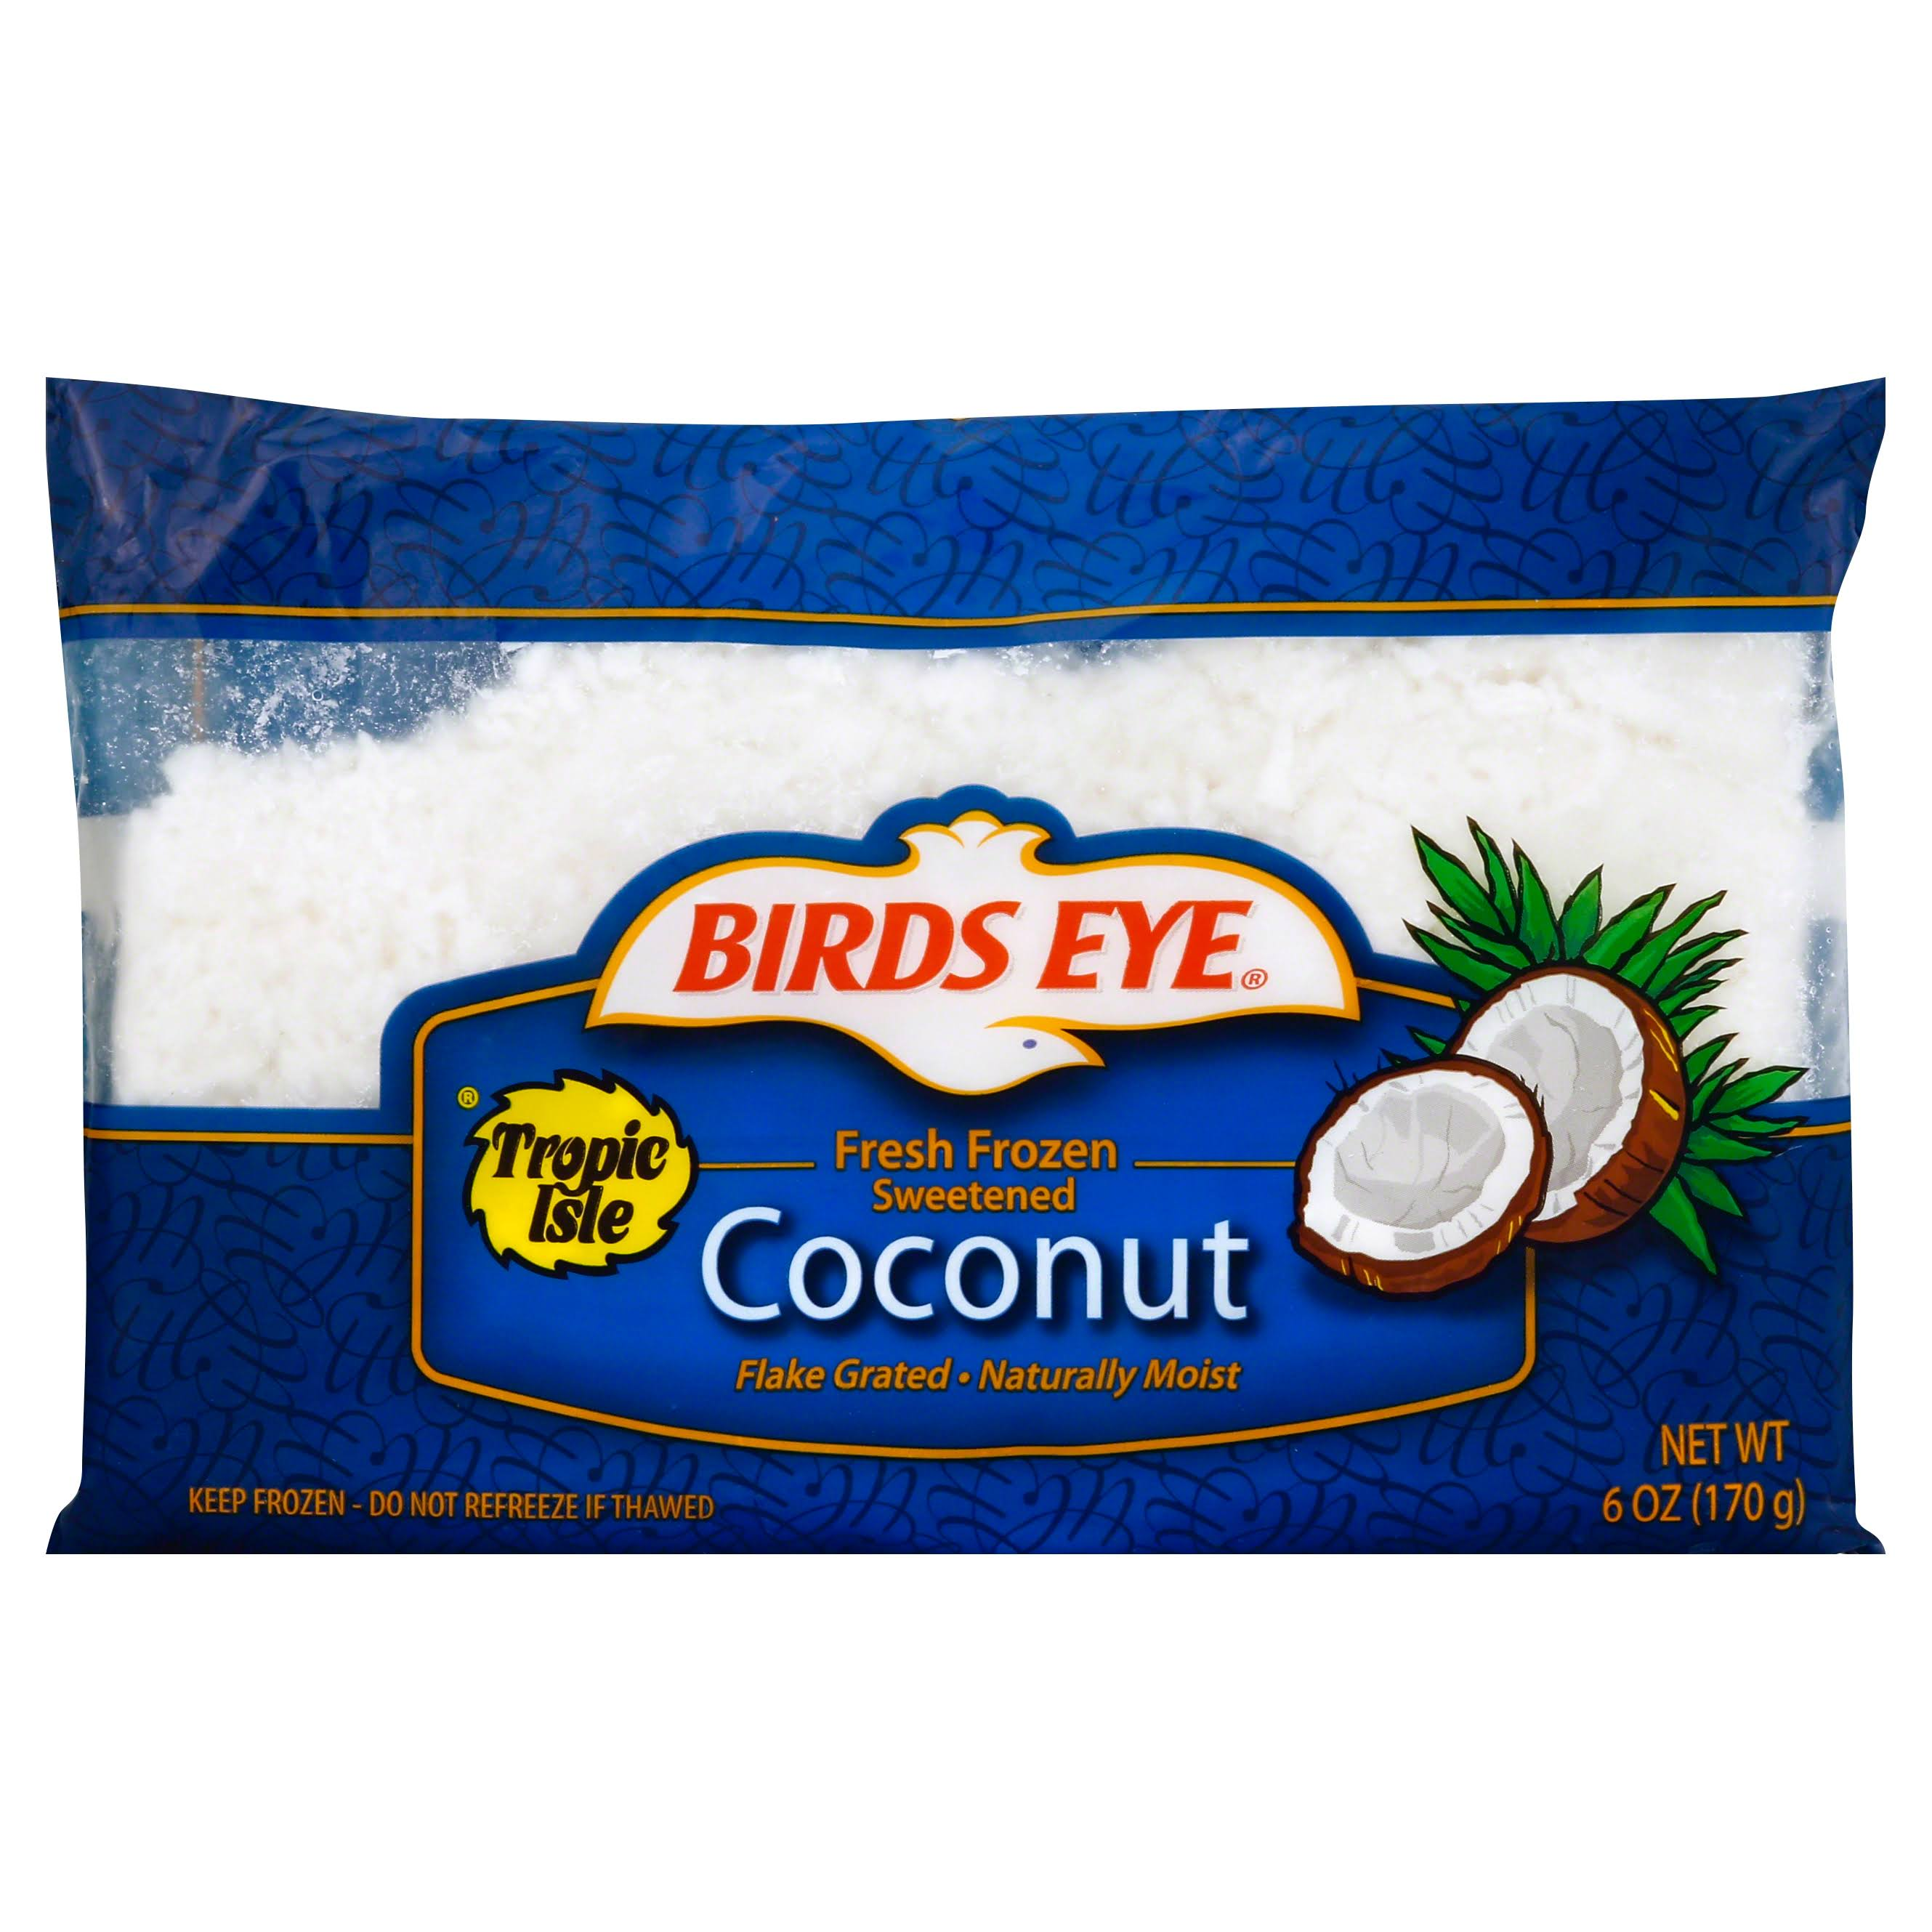 Birds Eye Tropic Isle Fresh Frozen Sweetened Coconut - 6oz